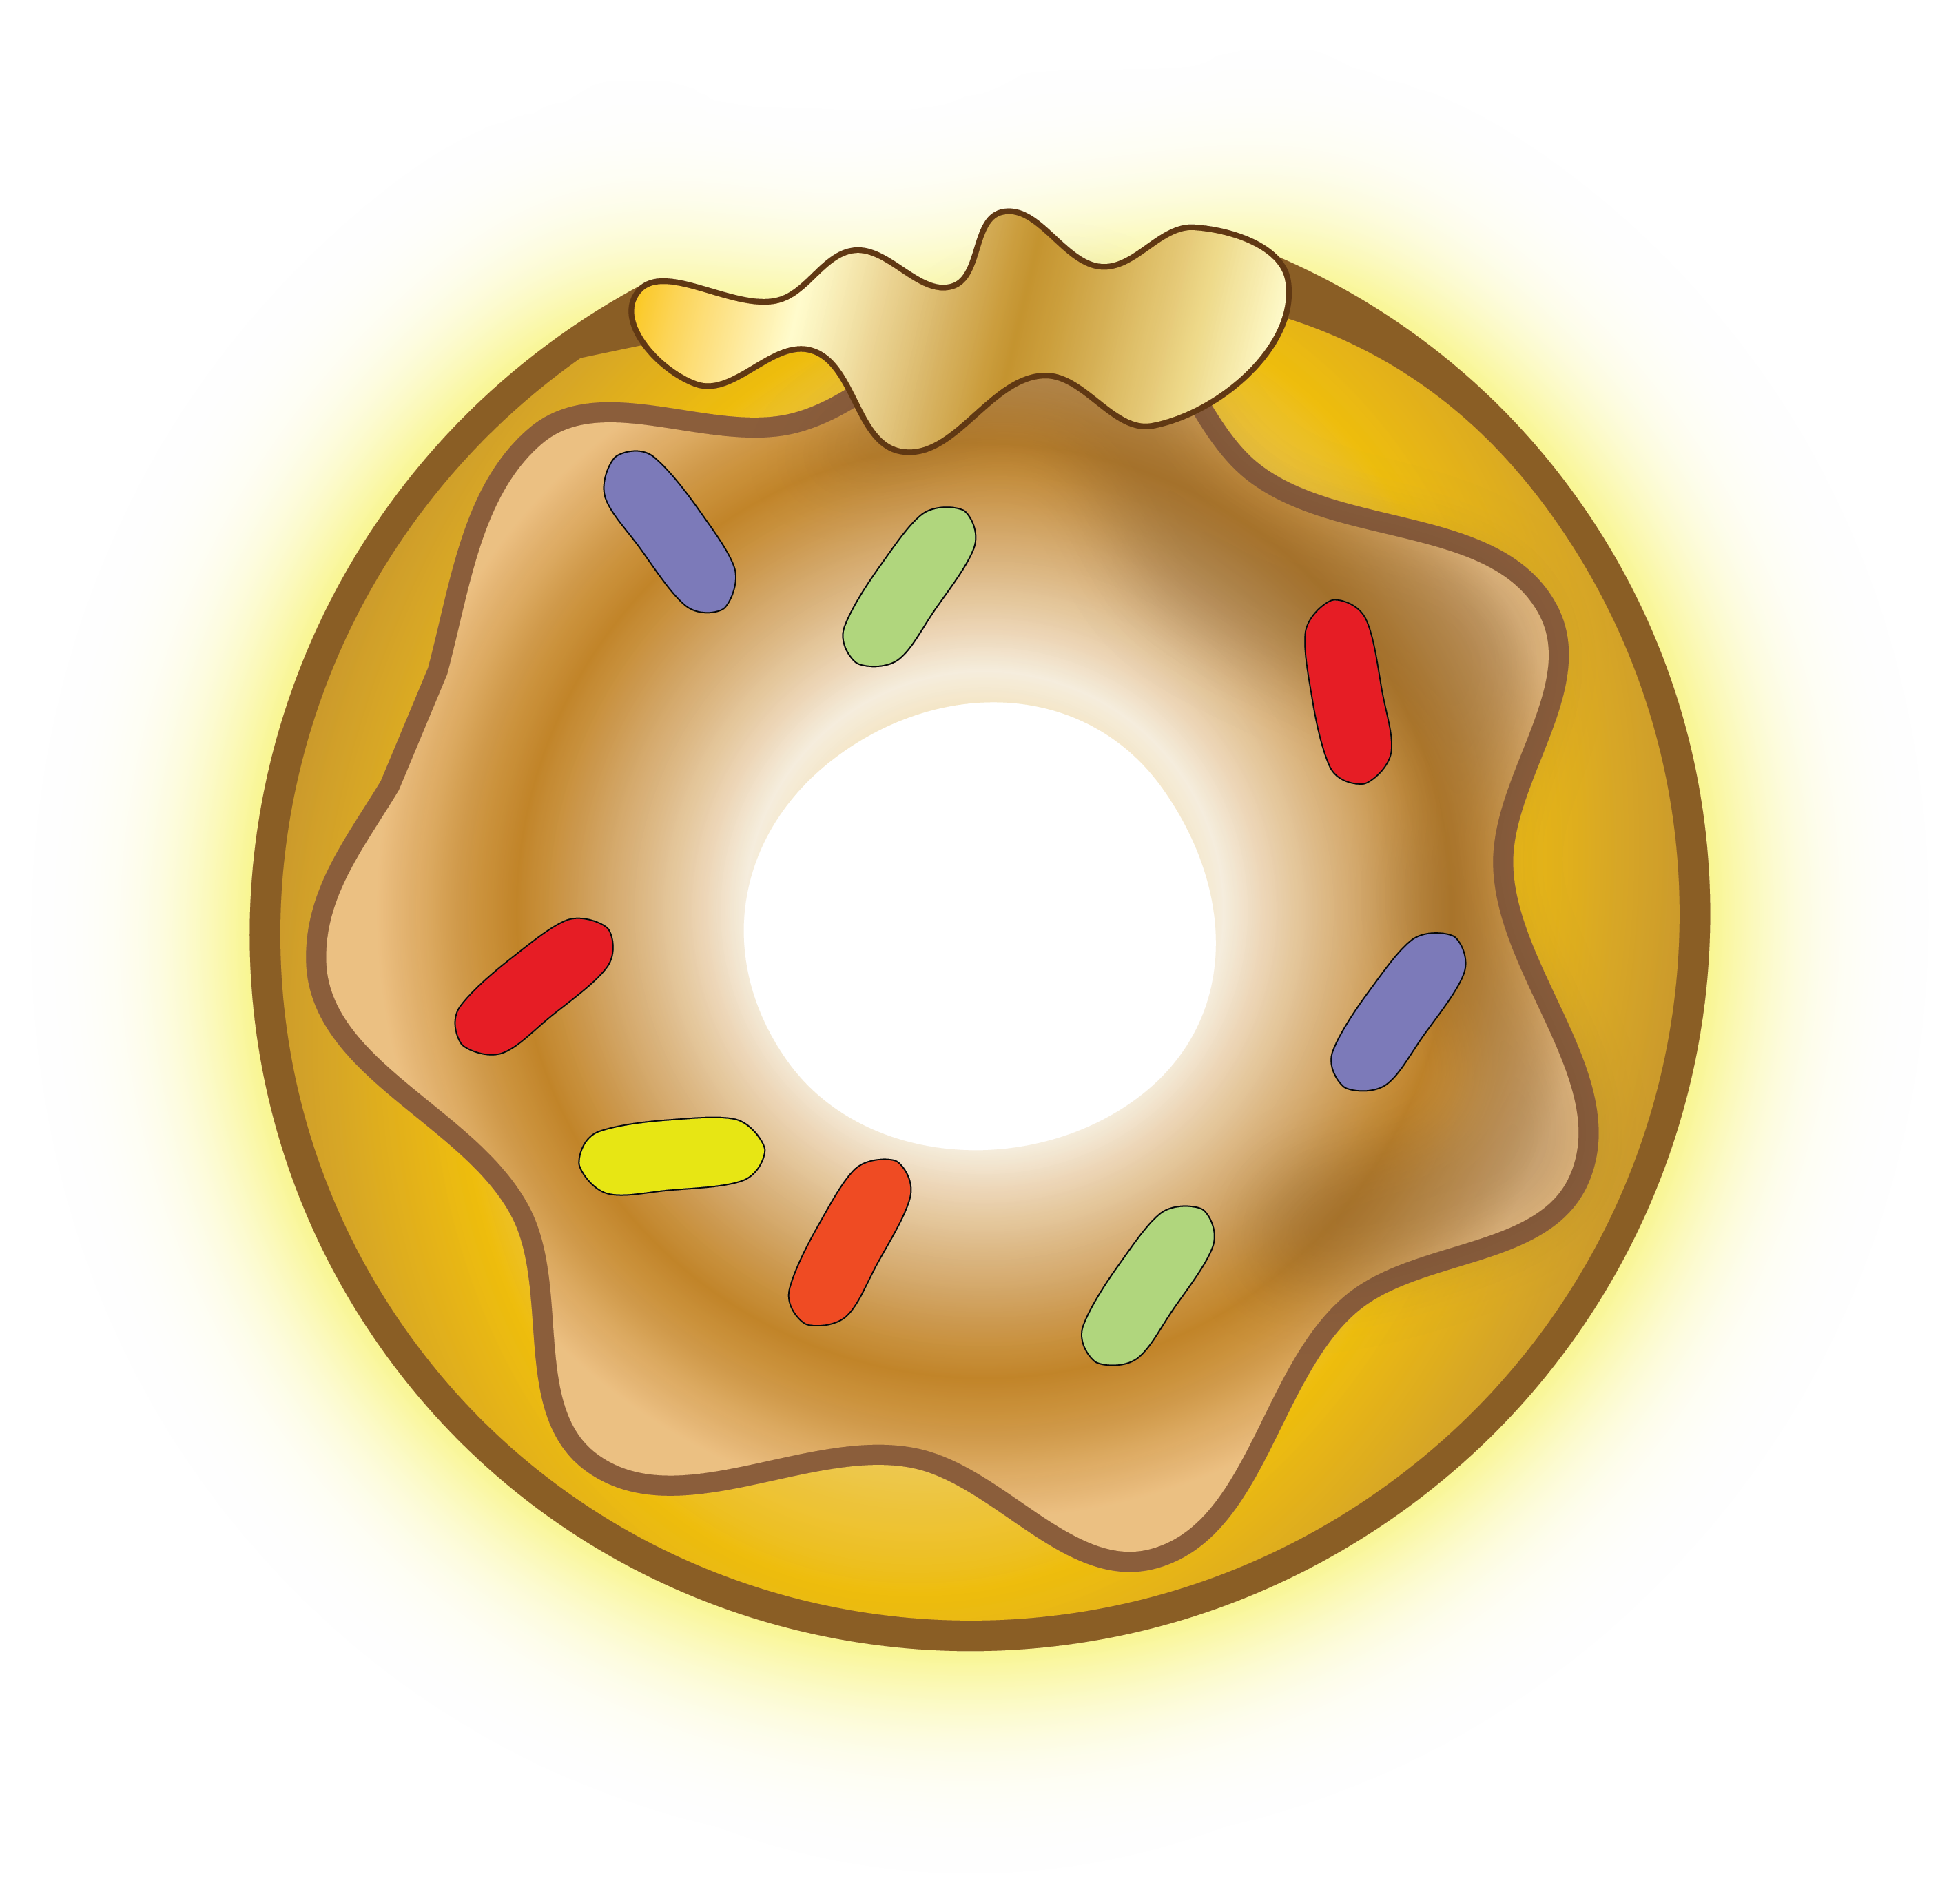 Donut clipart yellow. The gold reflections from